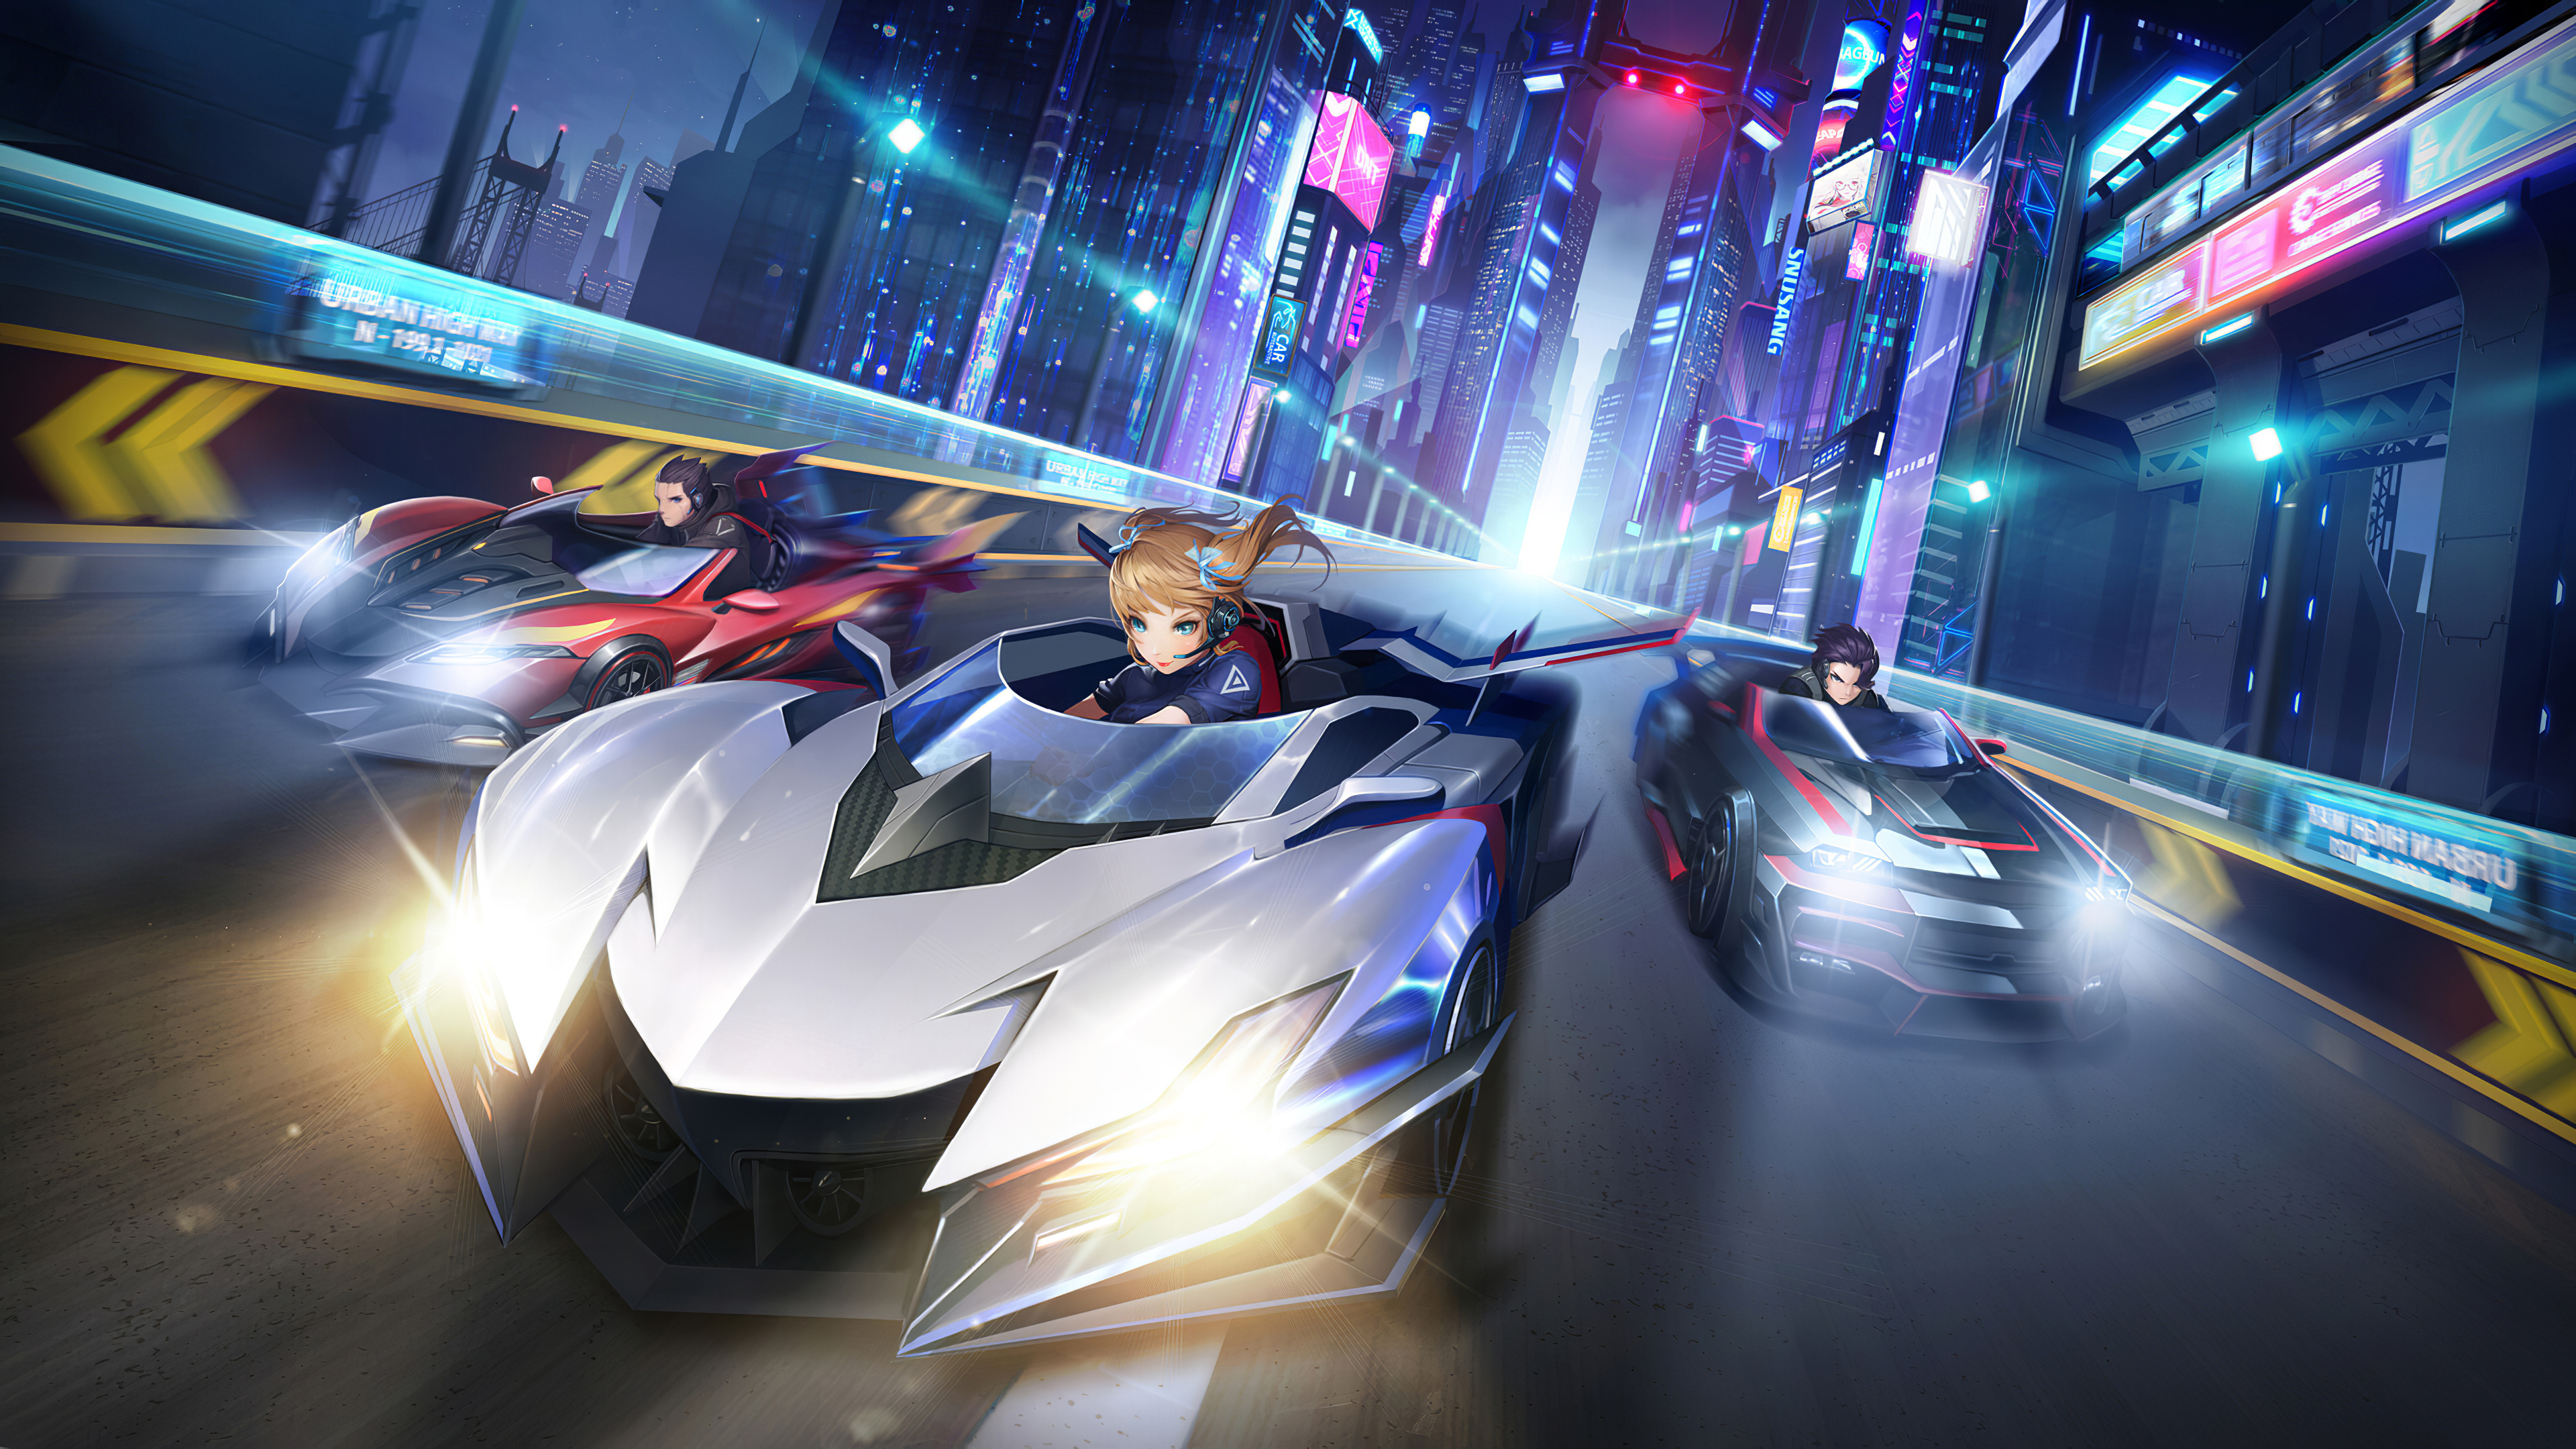 City Street Racing Anime 4k Hd Anime 4k Wallpapers Images Backgrounds Photos And Pictures